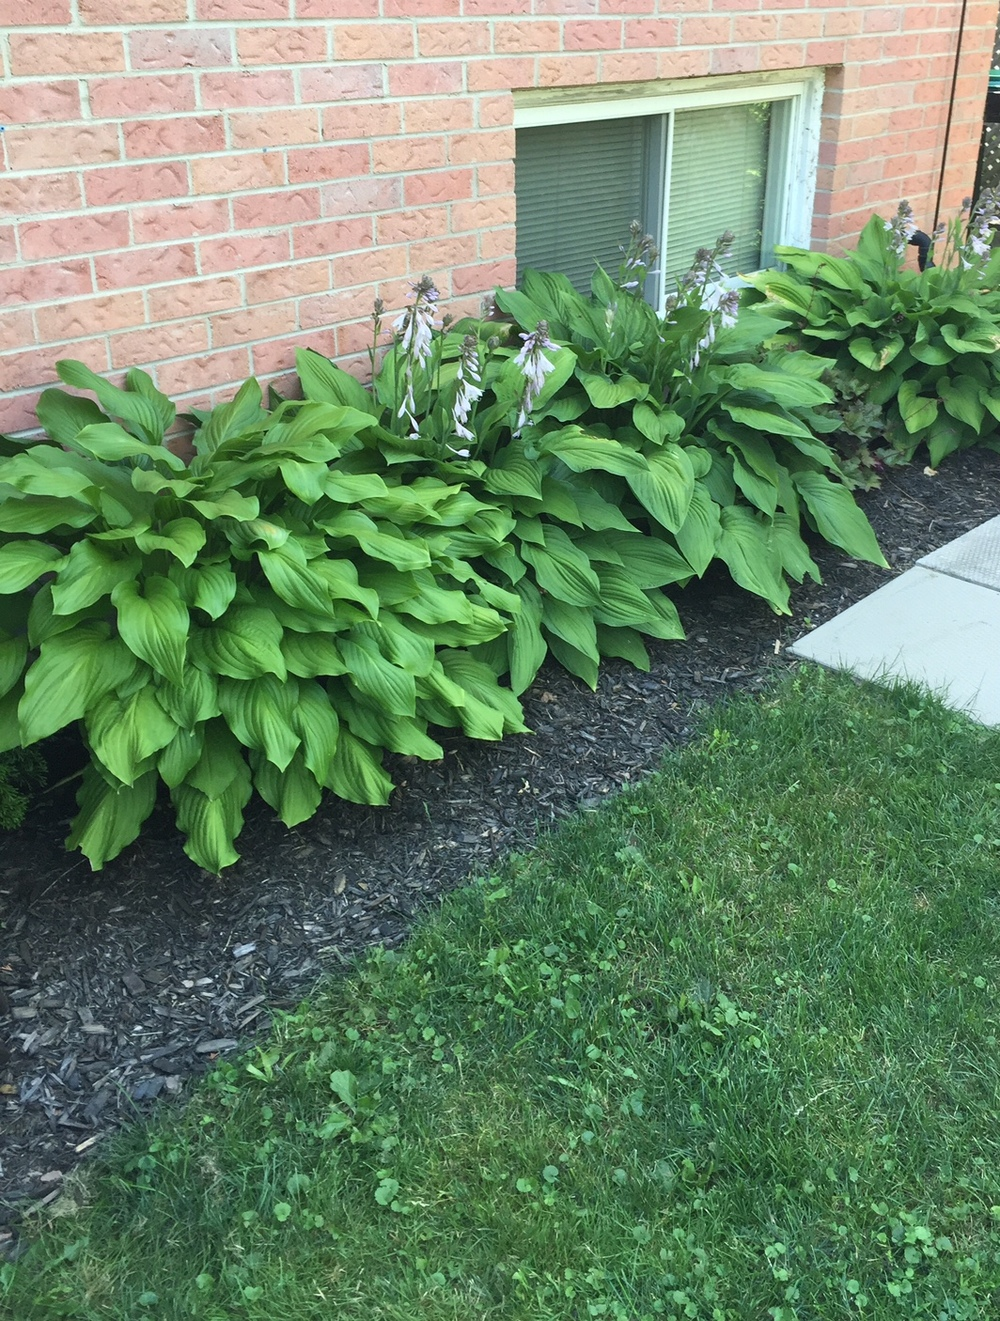 As you can see, my hostas aren't having any trouble growing! Planning to split them this fall